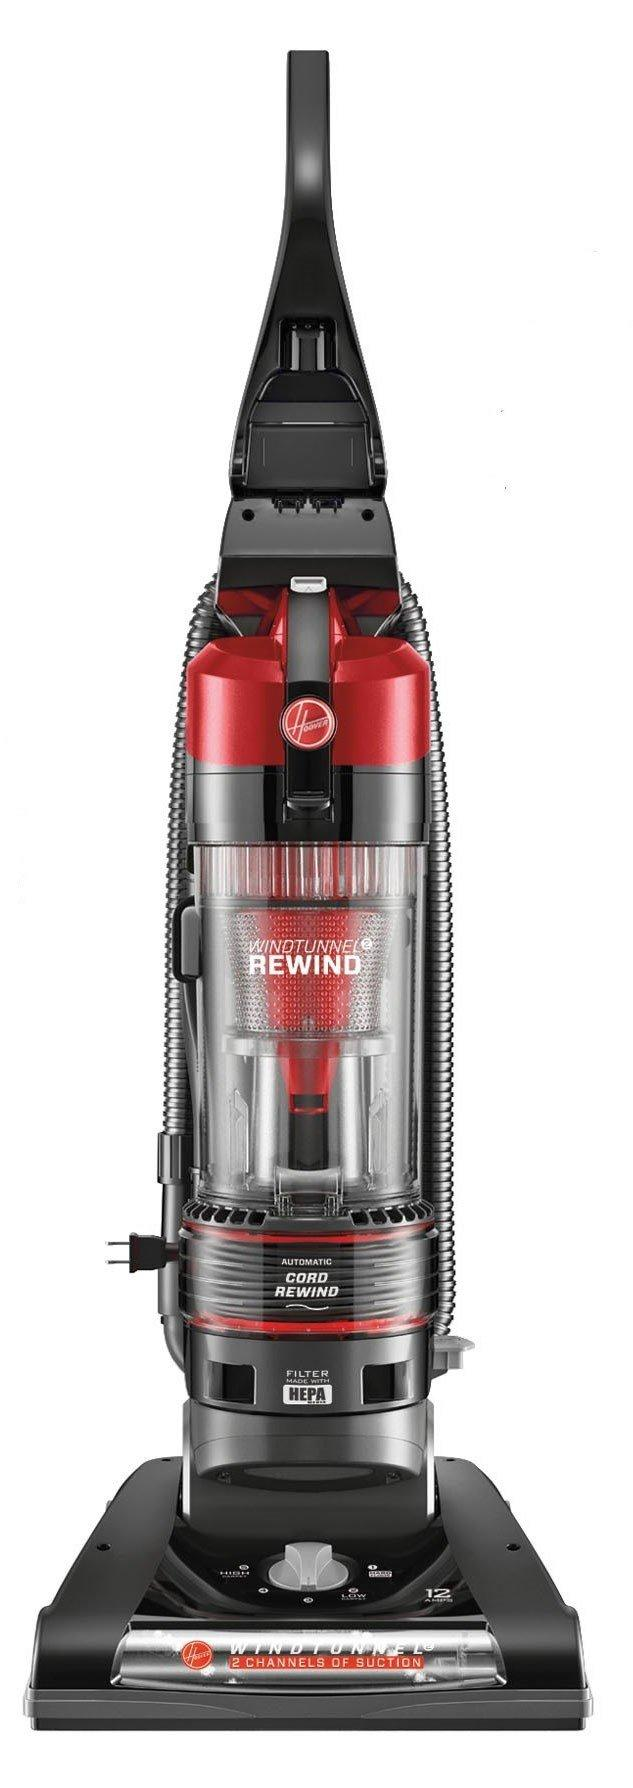 Hoover WindTunnel 2 Rewind Bagless Upright Vacuum Cleaner Refurbished UH70820RM